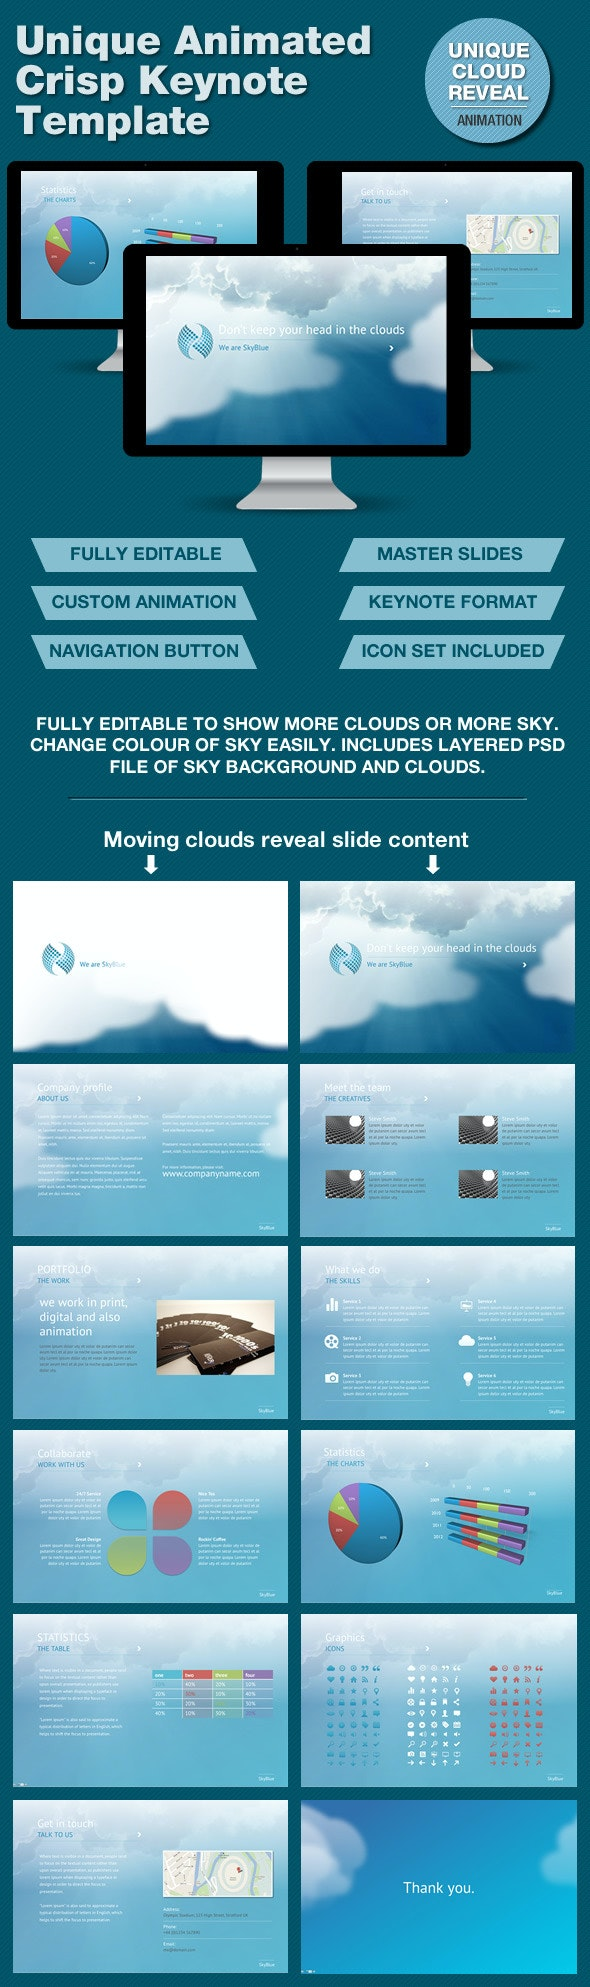 SkyBlue Keynote Template with Unique Animation - Keynote Templates Presentation Templates